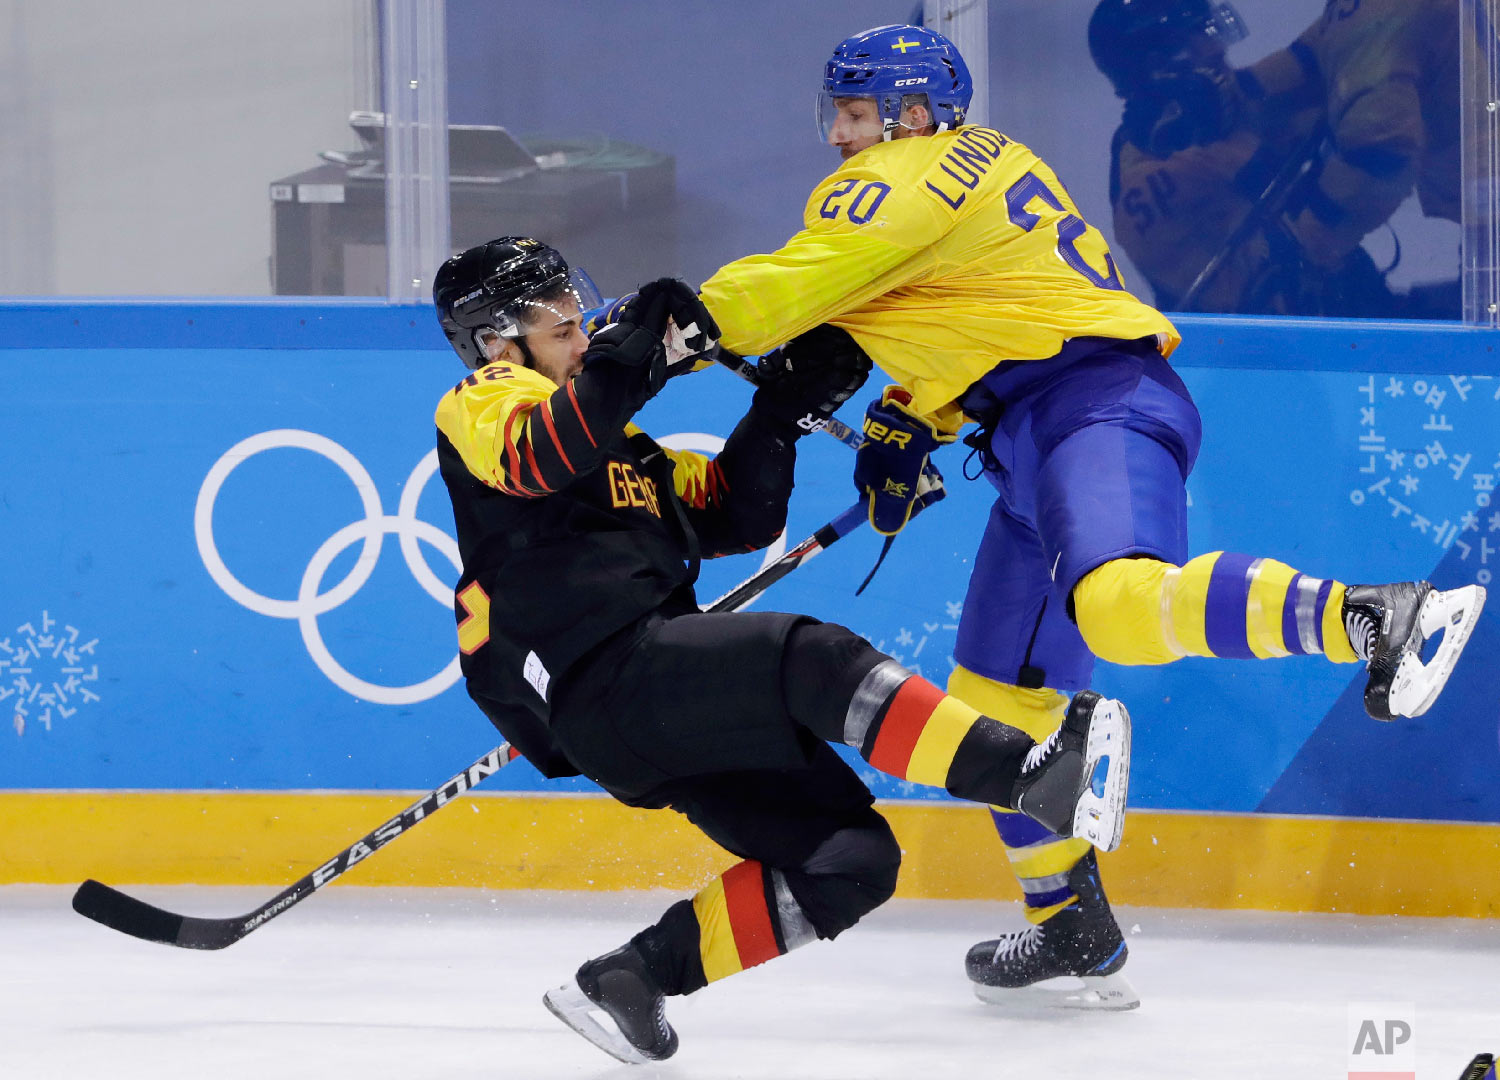 Joel Lundqvist (20), of Sweden, and Yasin Ehliz (42), of Germany, collide during the third period of a preliminary round men's hockey game at the 2018 Winter Olympics, Friday, Feb. 16, 2018, in Gangneung, South Korea. Sweden won 1-0. (AP Photo/Matt Slocum)